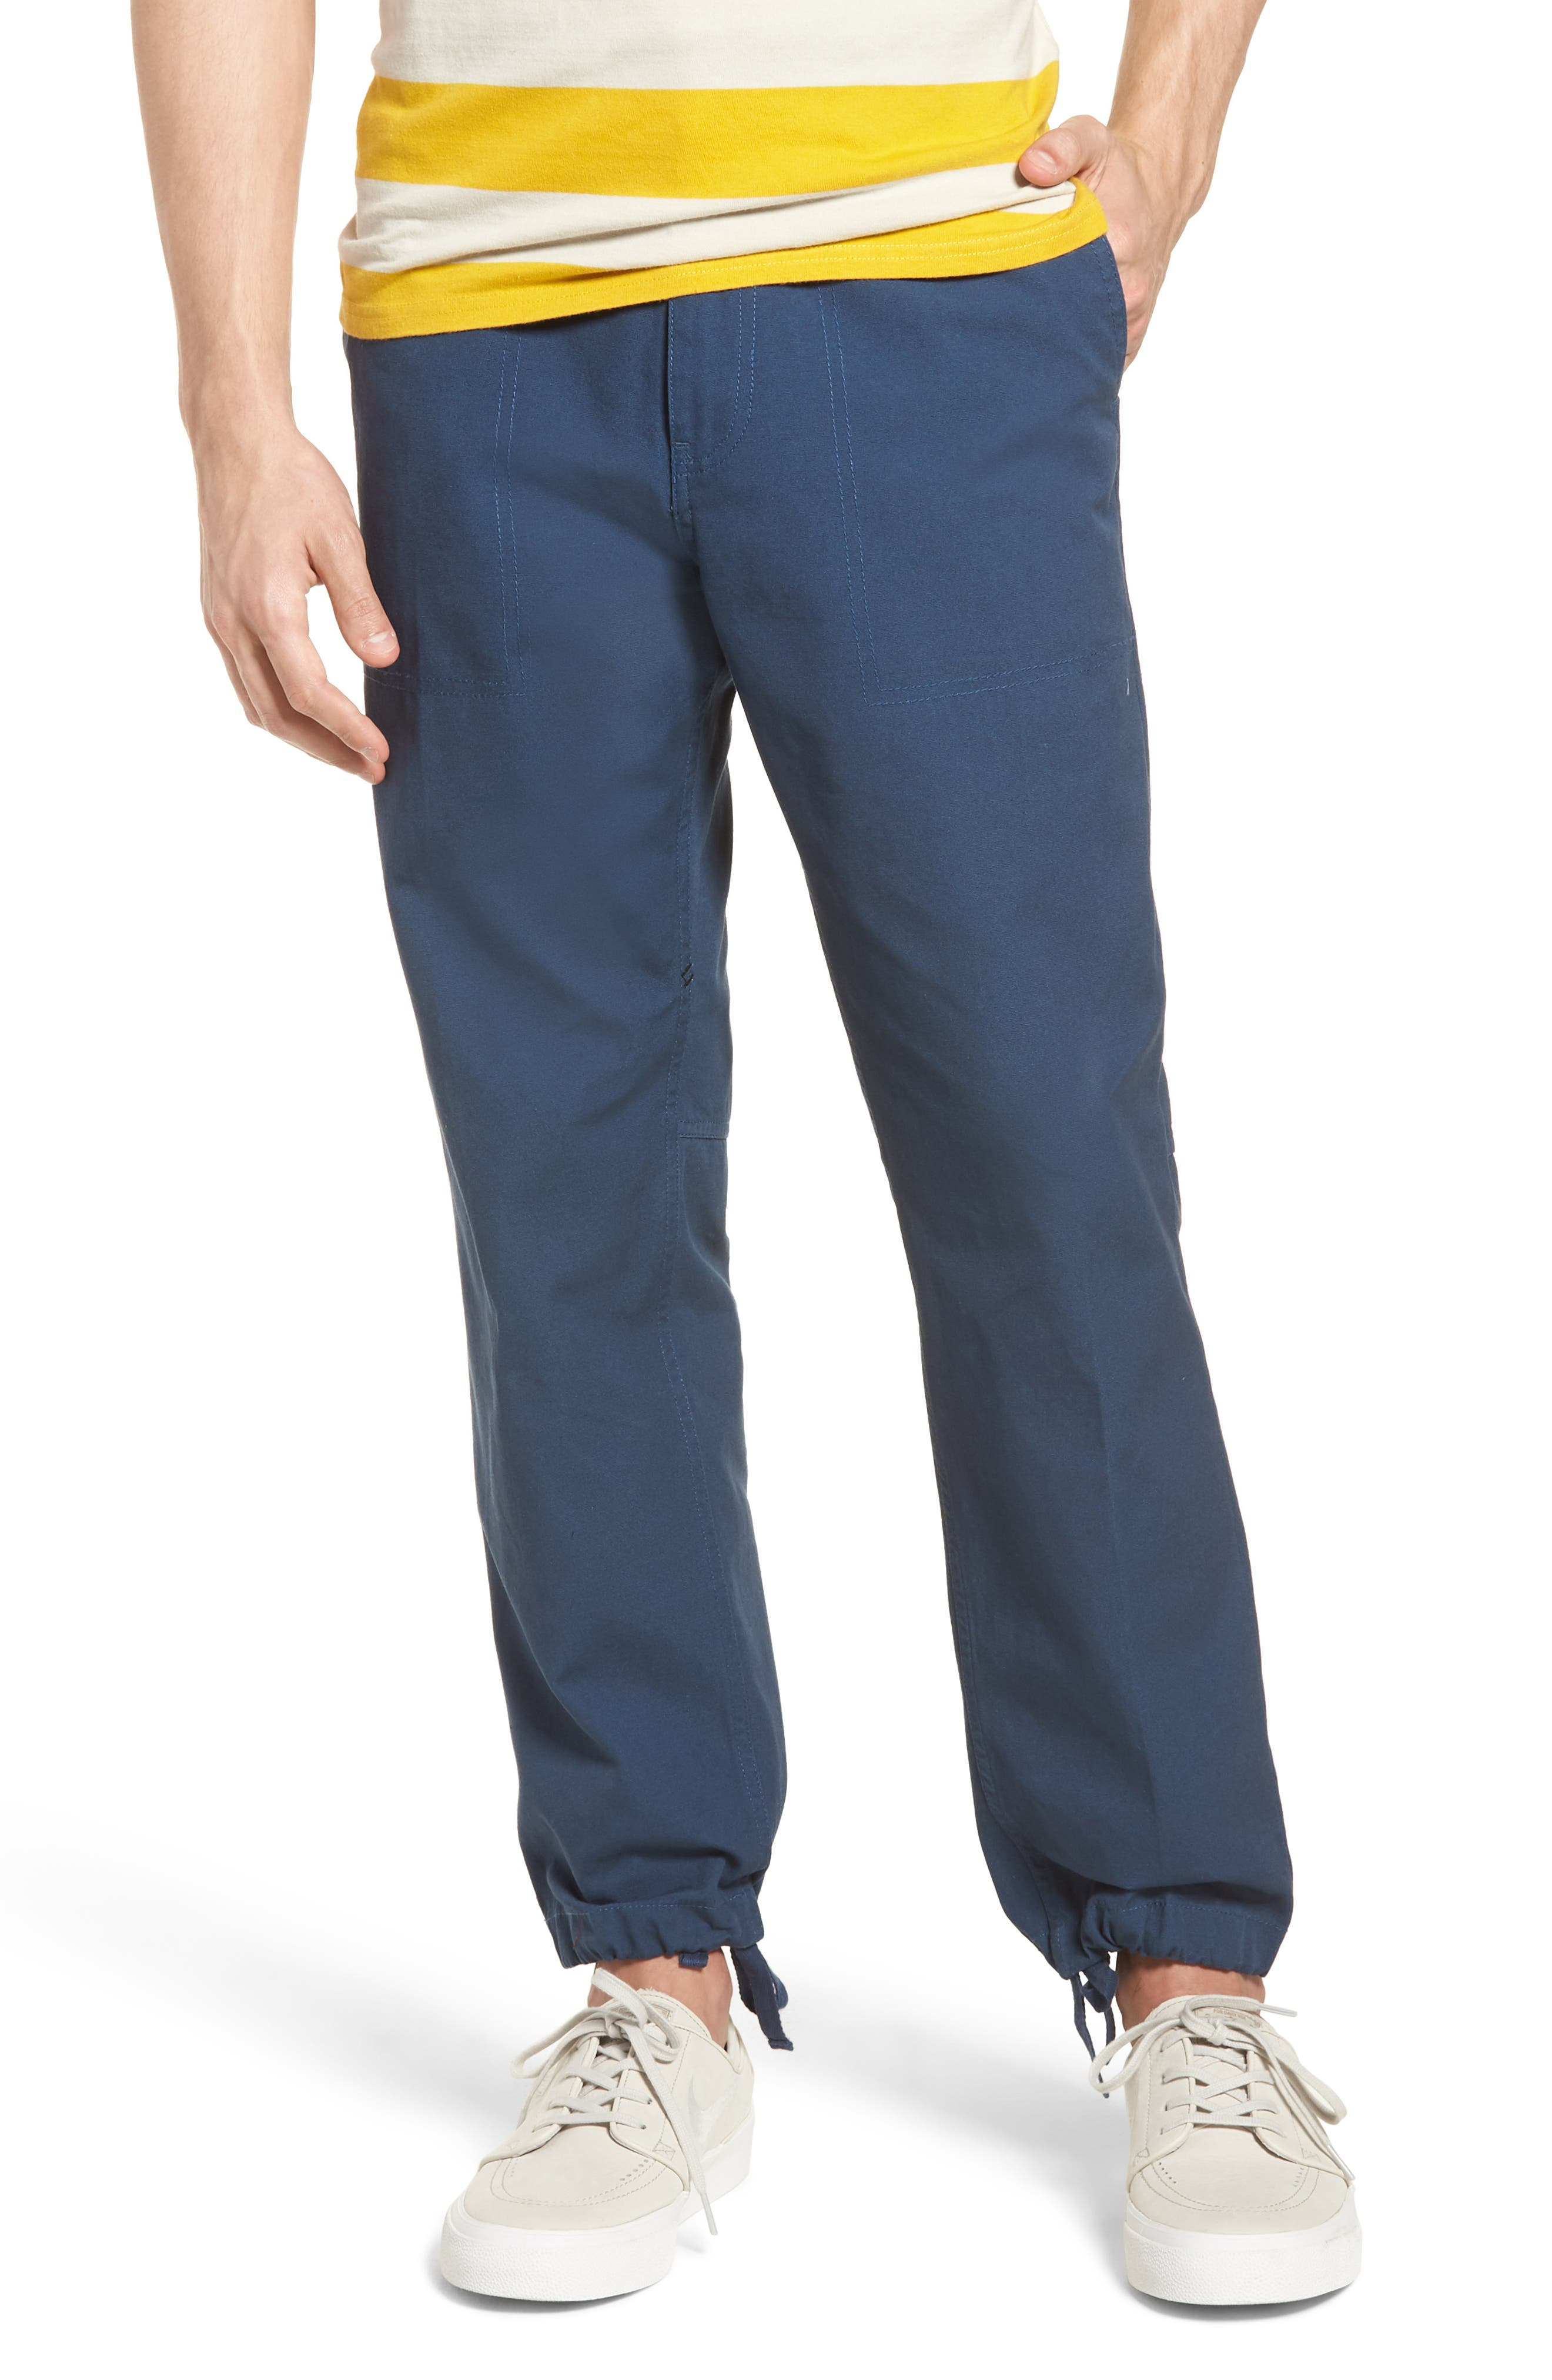 Ambush Straight Leg Pants,                         Main,                         color, True Blue